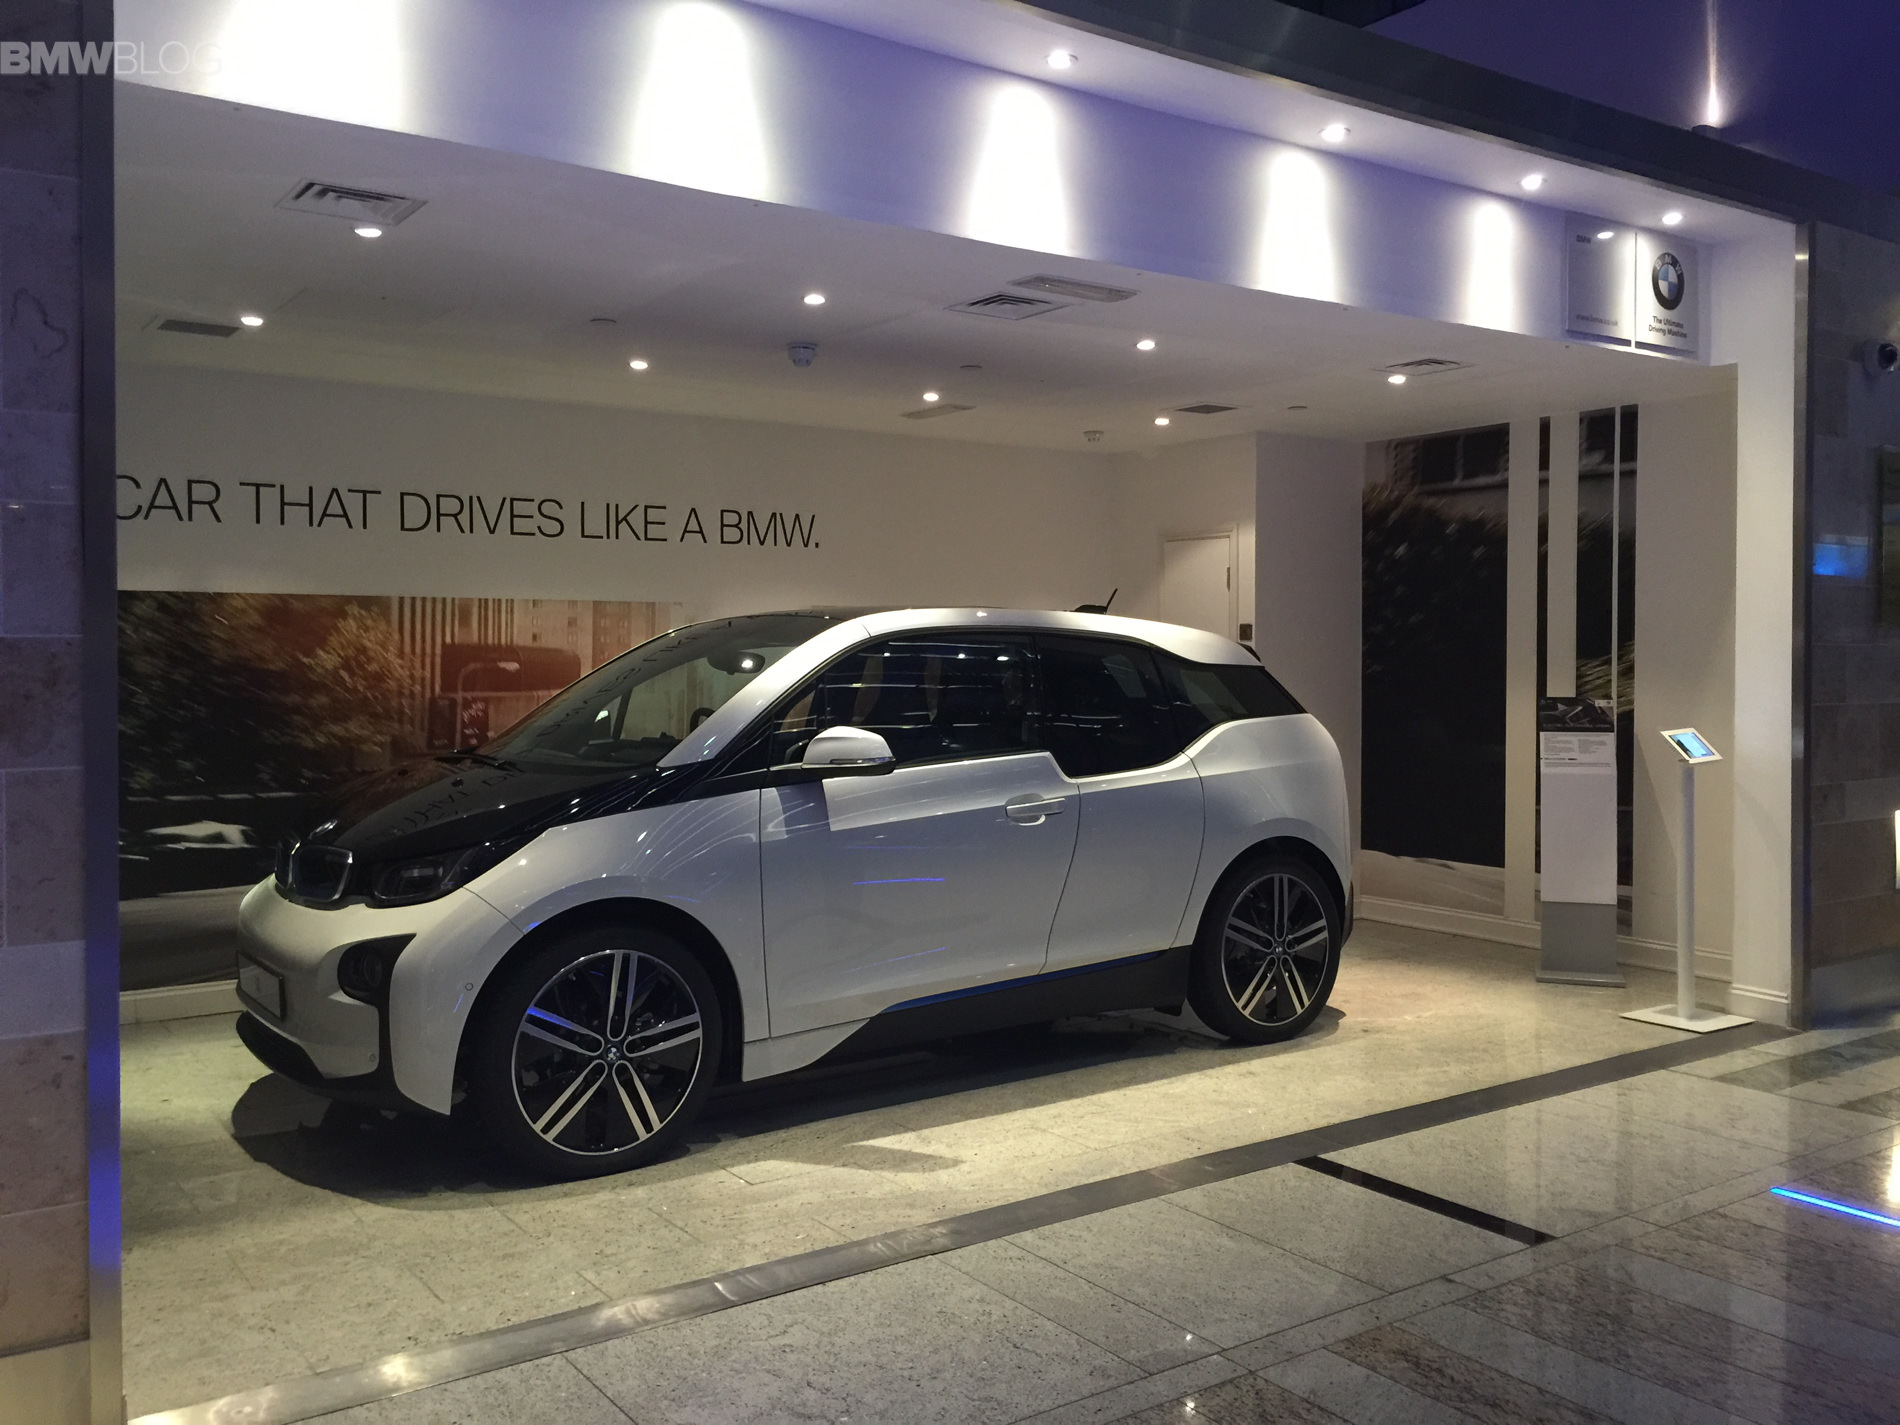 BMW i3 heathrow airport images 03